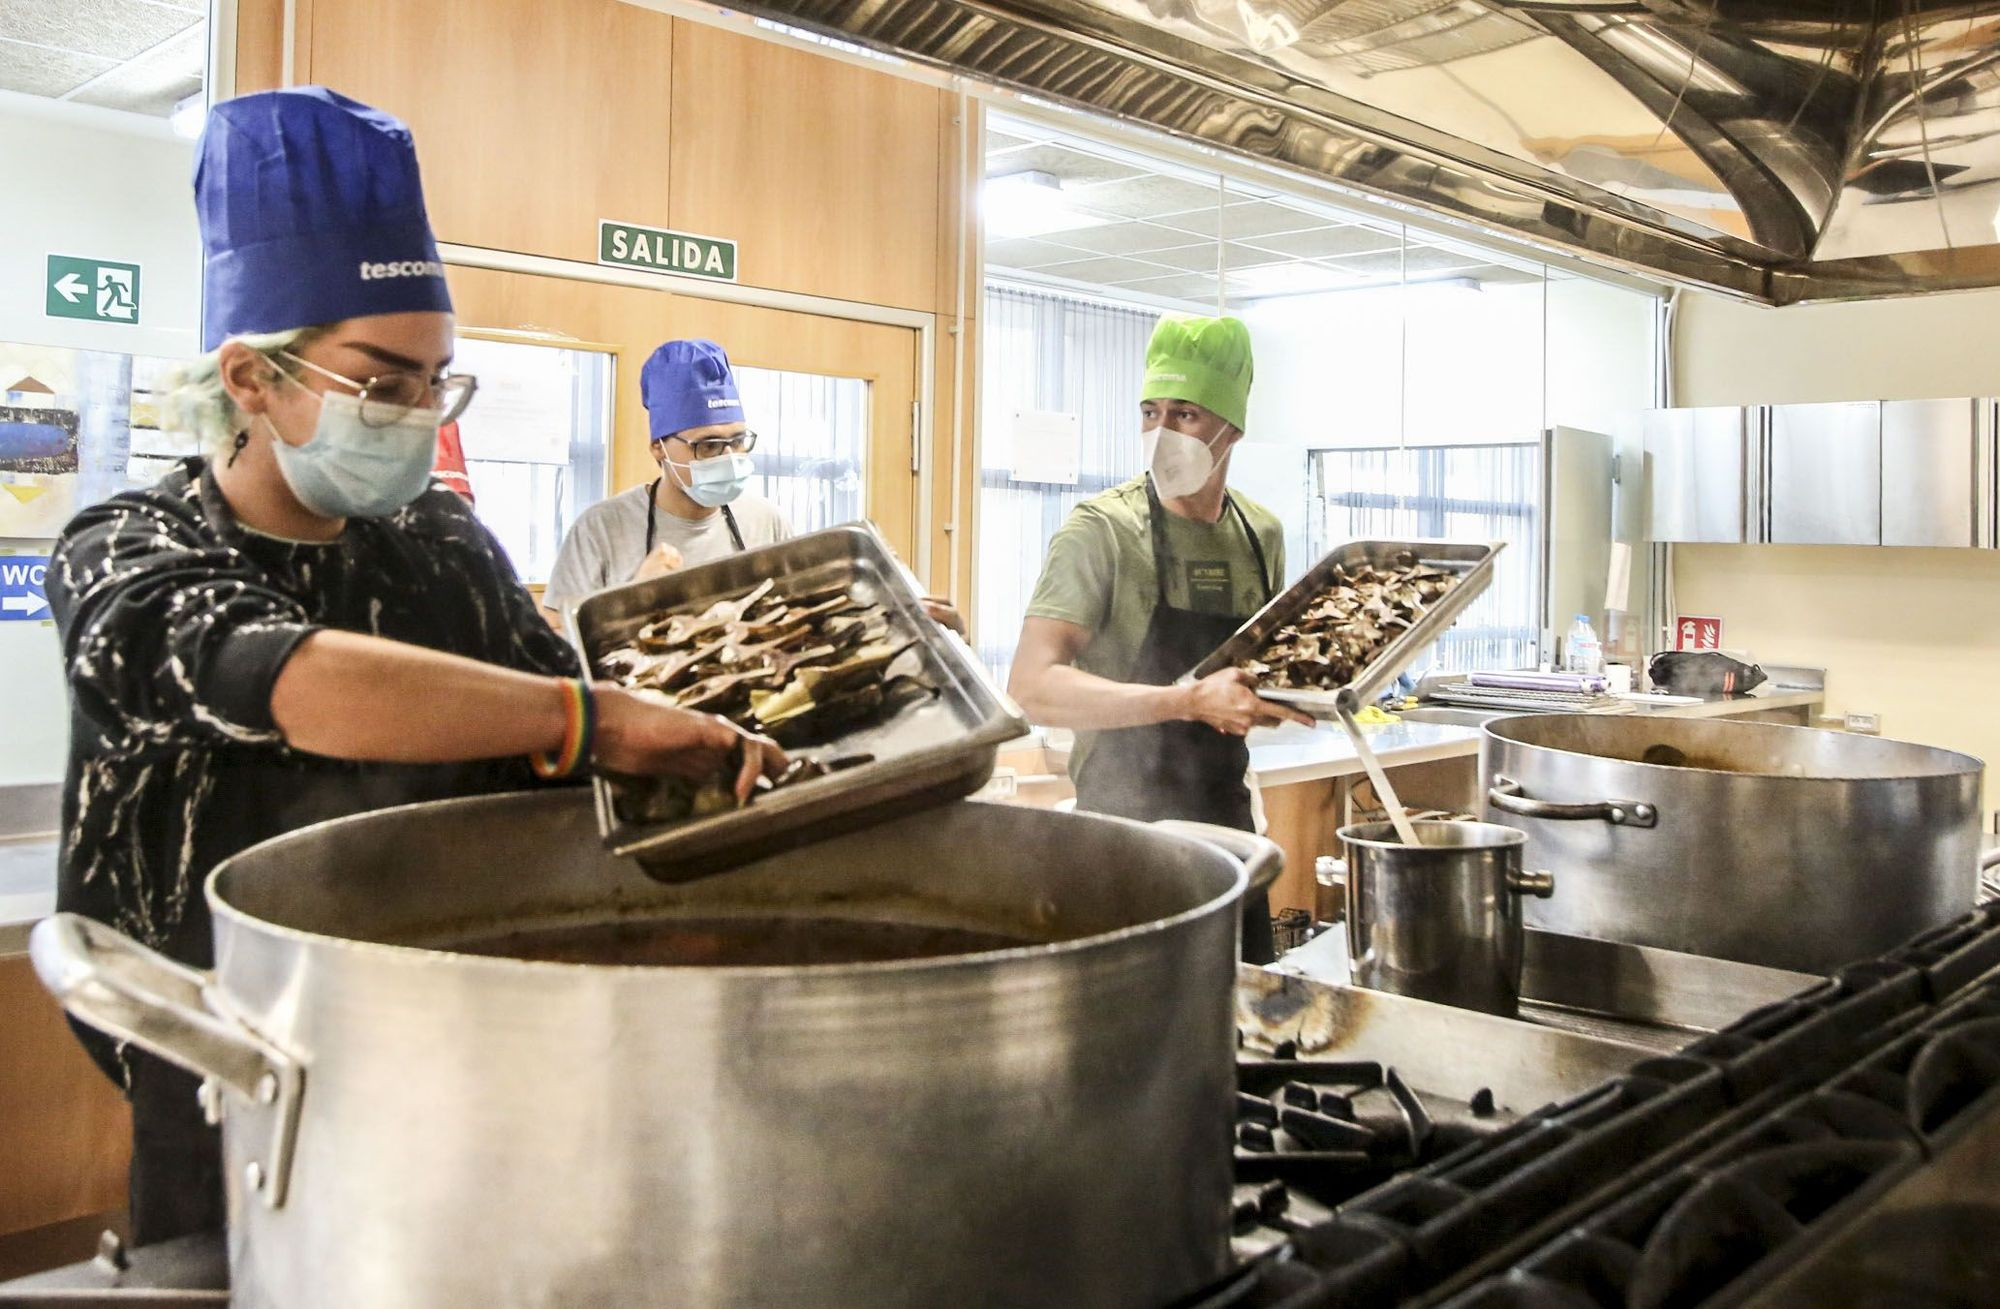 Alicante Gastronómica and the Chamber of Commerce join forces to insert 30 unemployed people into the labor market and feed families without resources